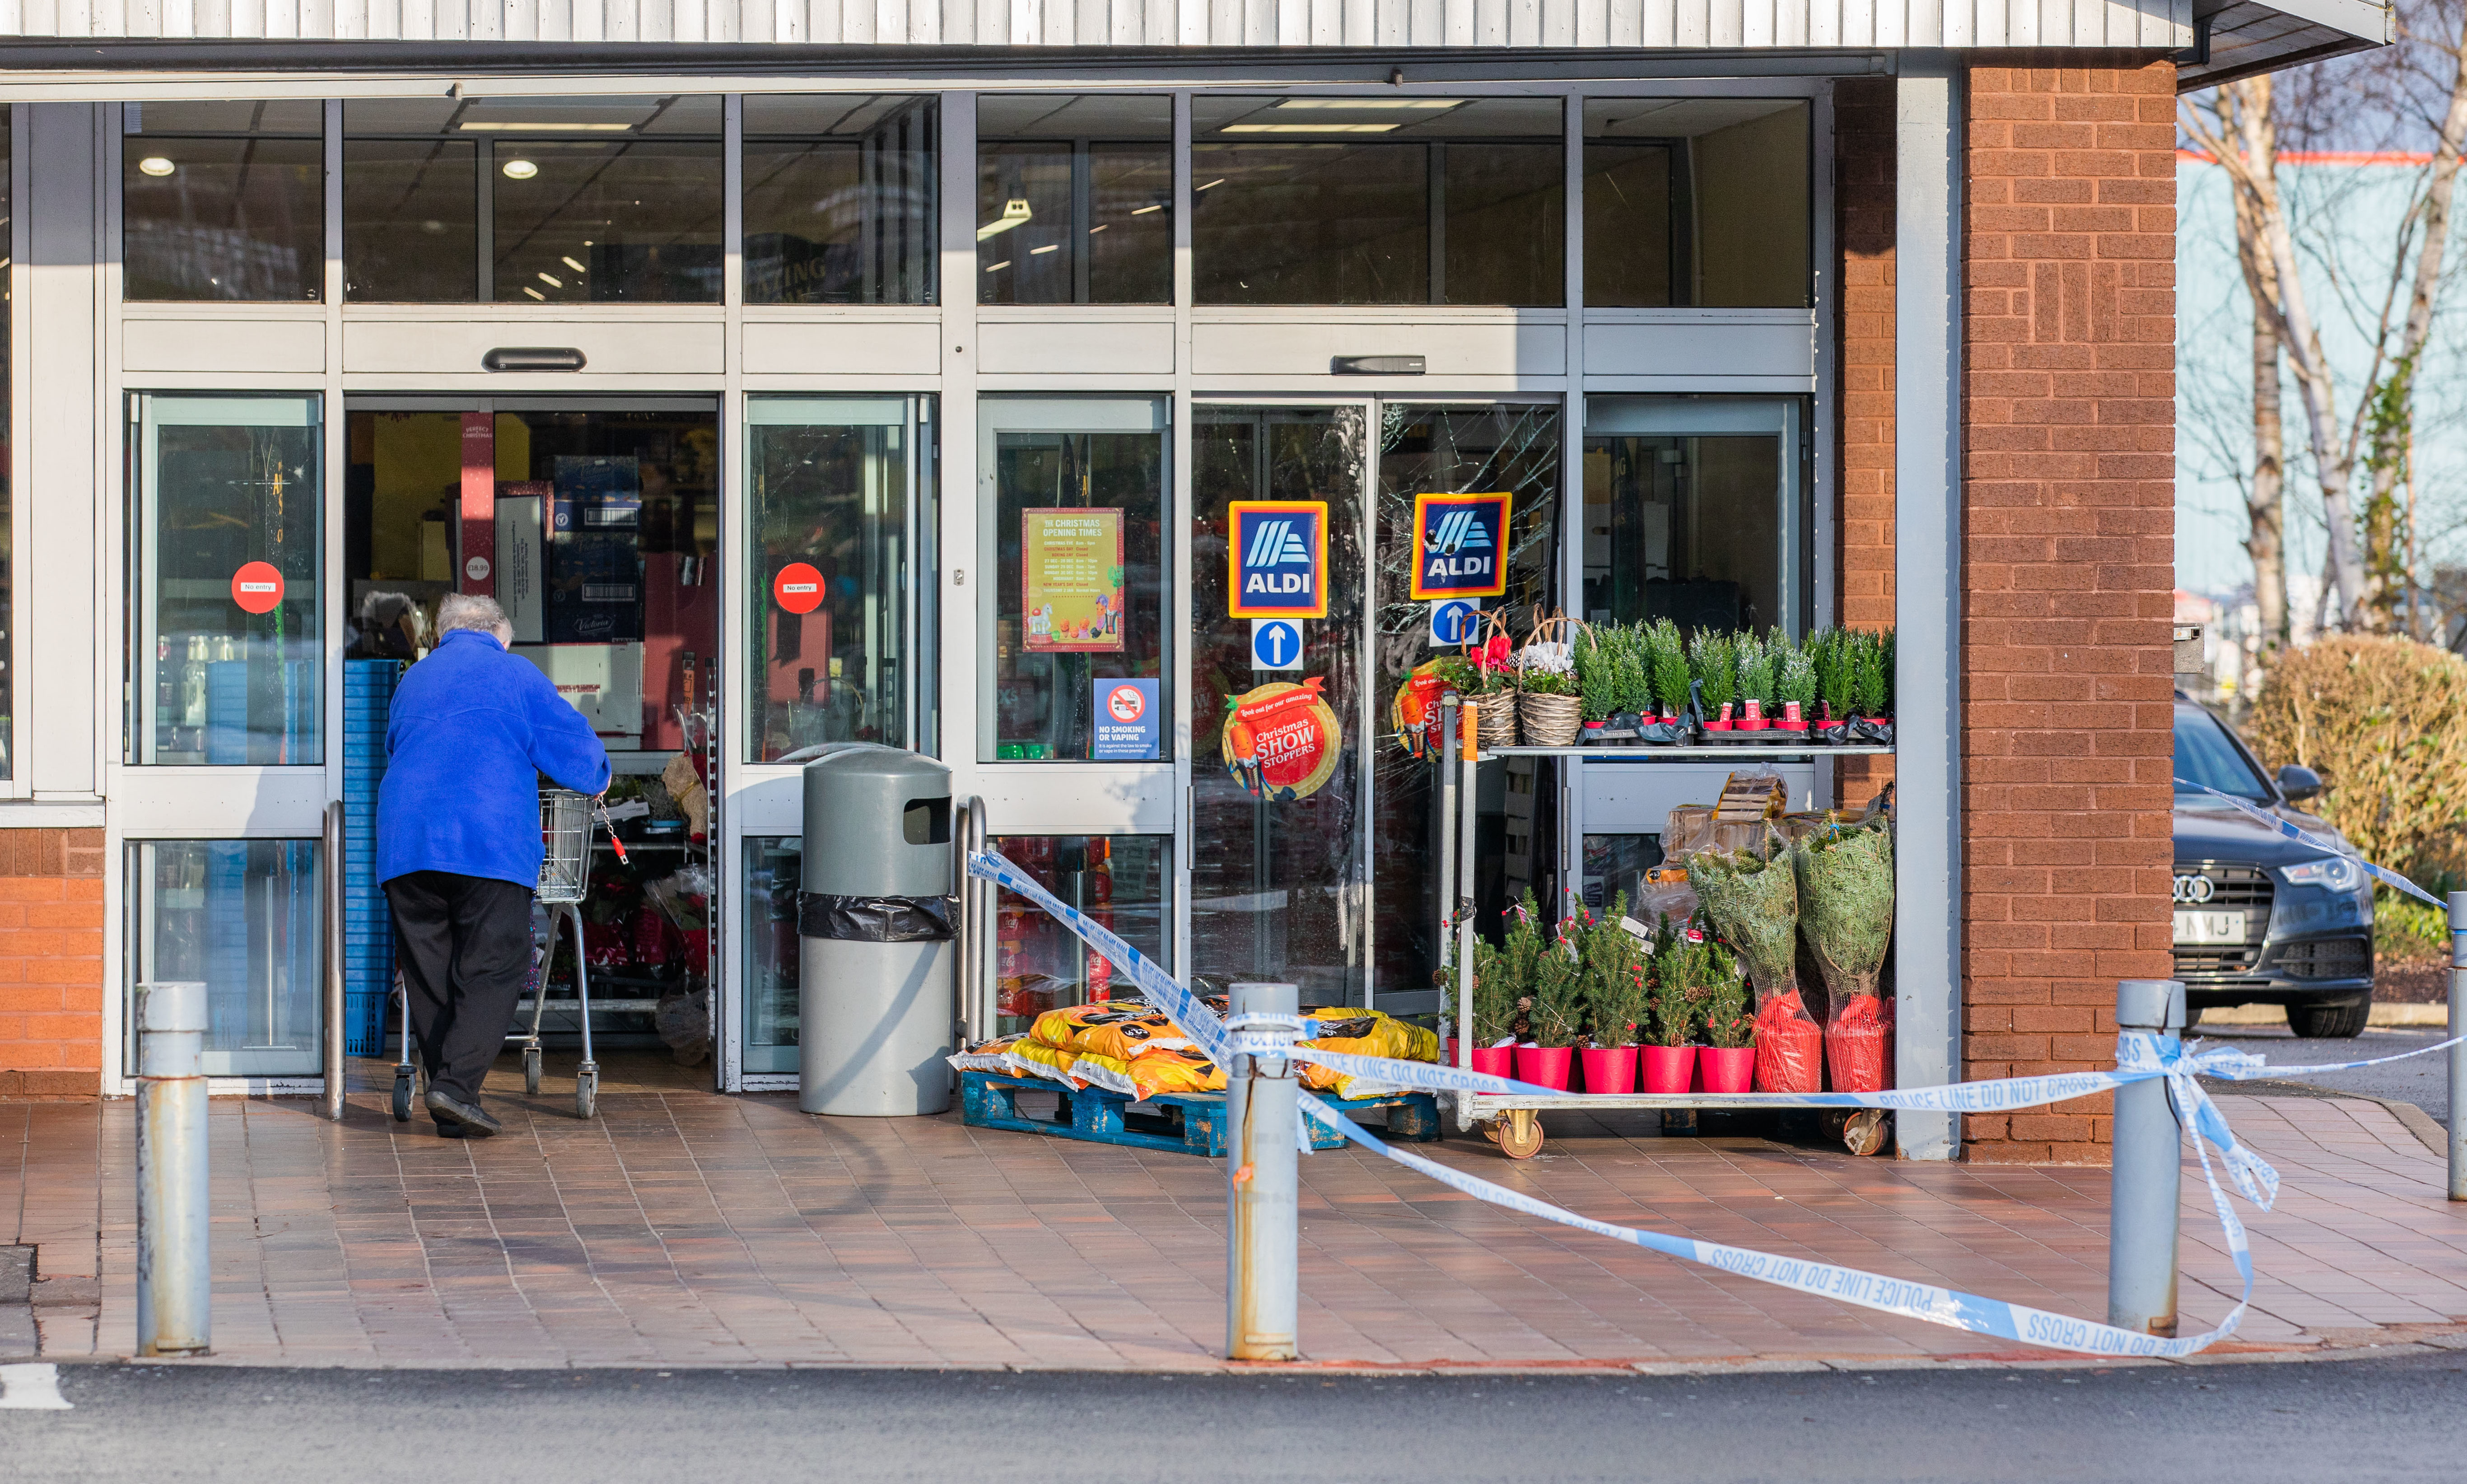 Police probe the break-in at ALdi, Glasgow Road, Perth